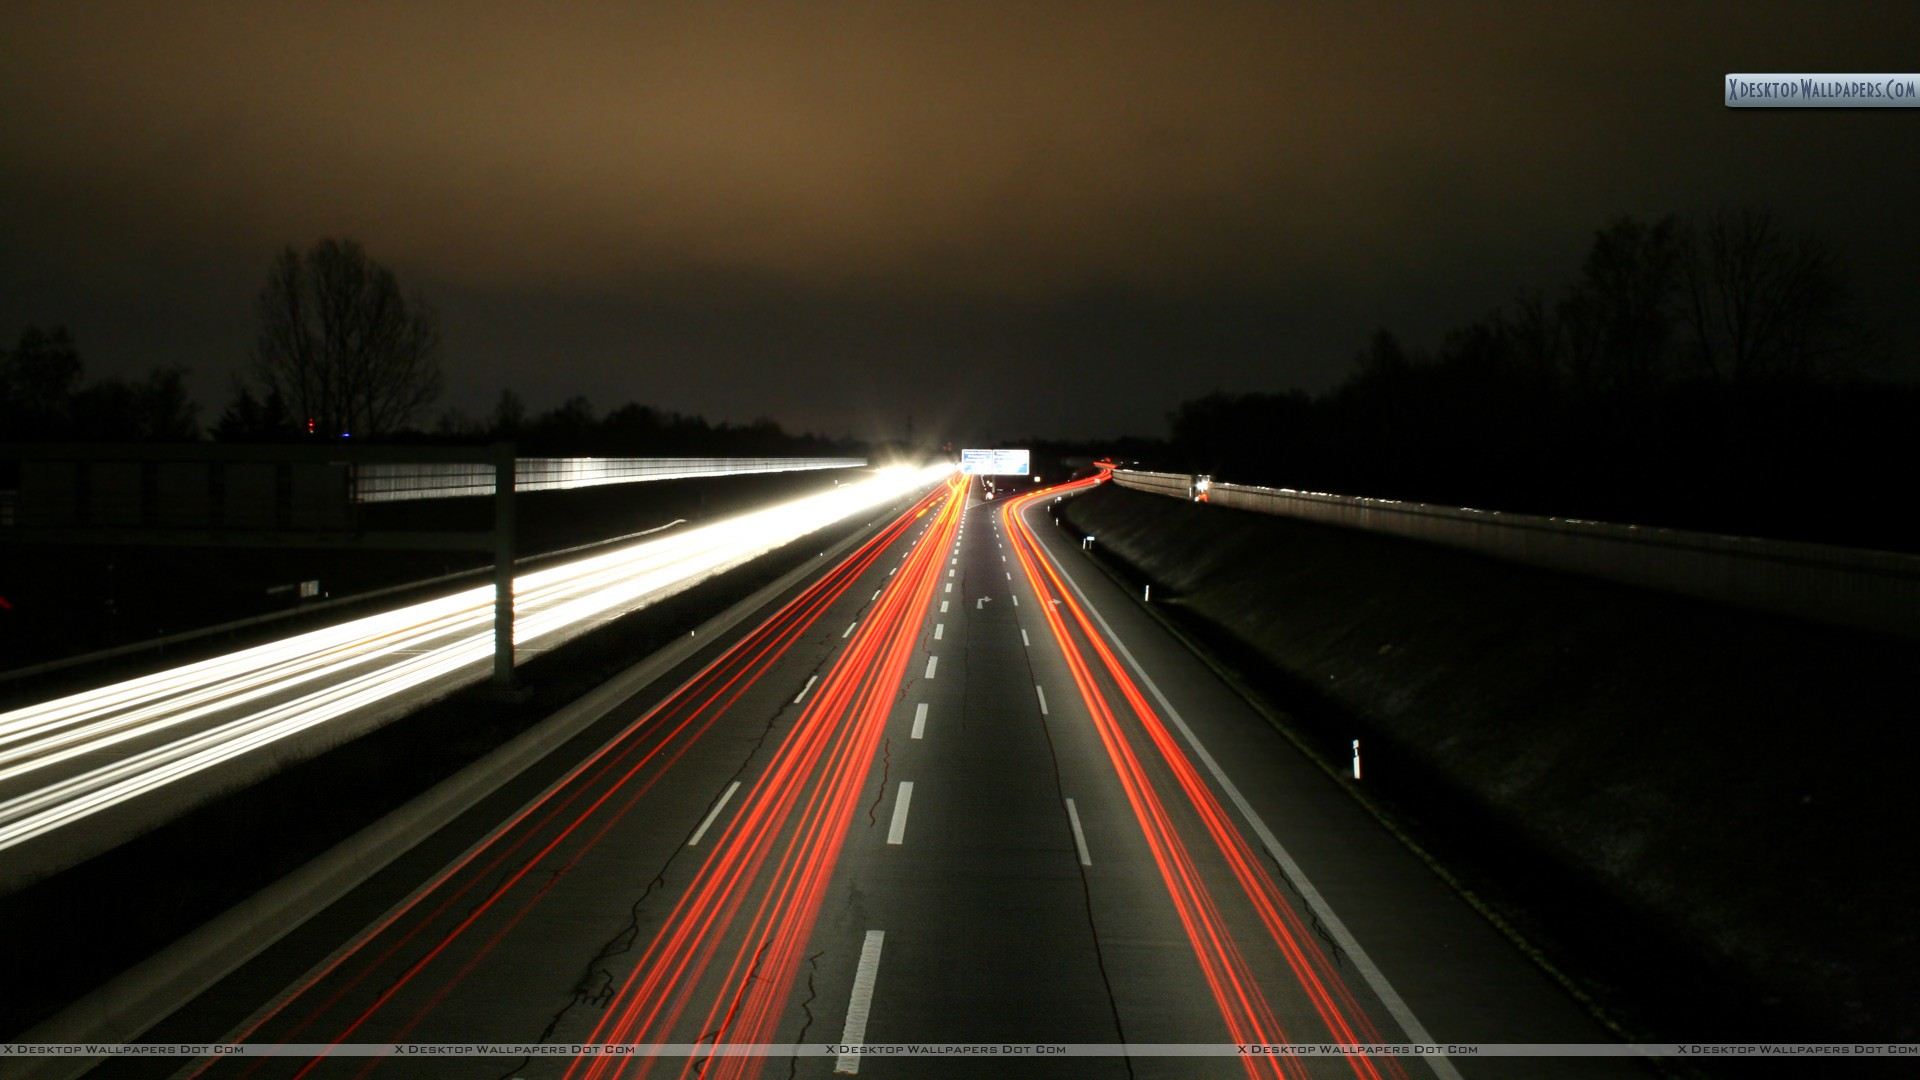 Led Lights On Highway 1920x1080